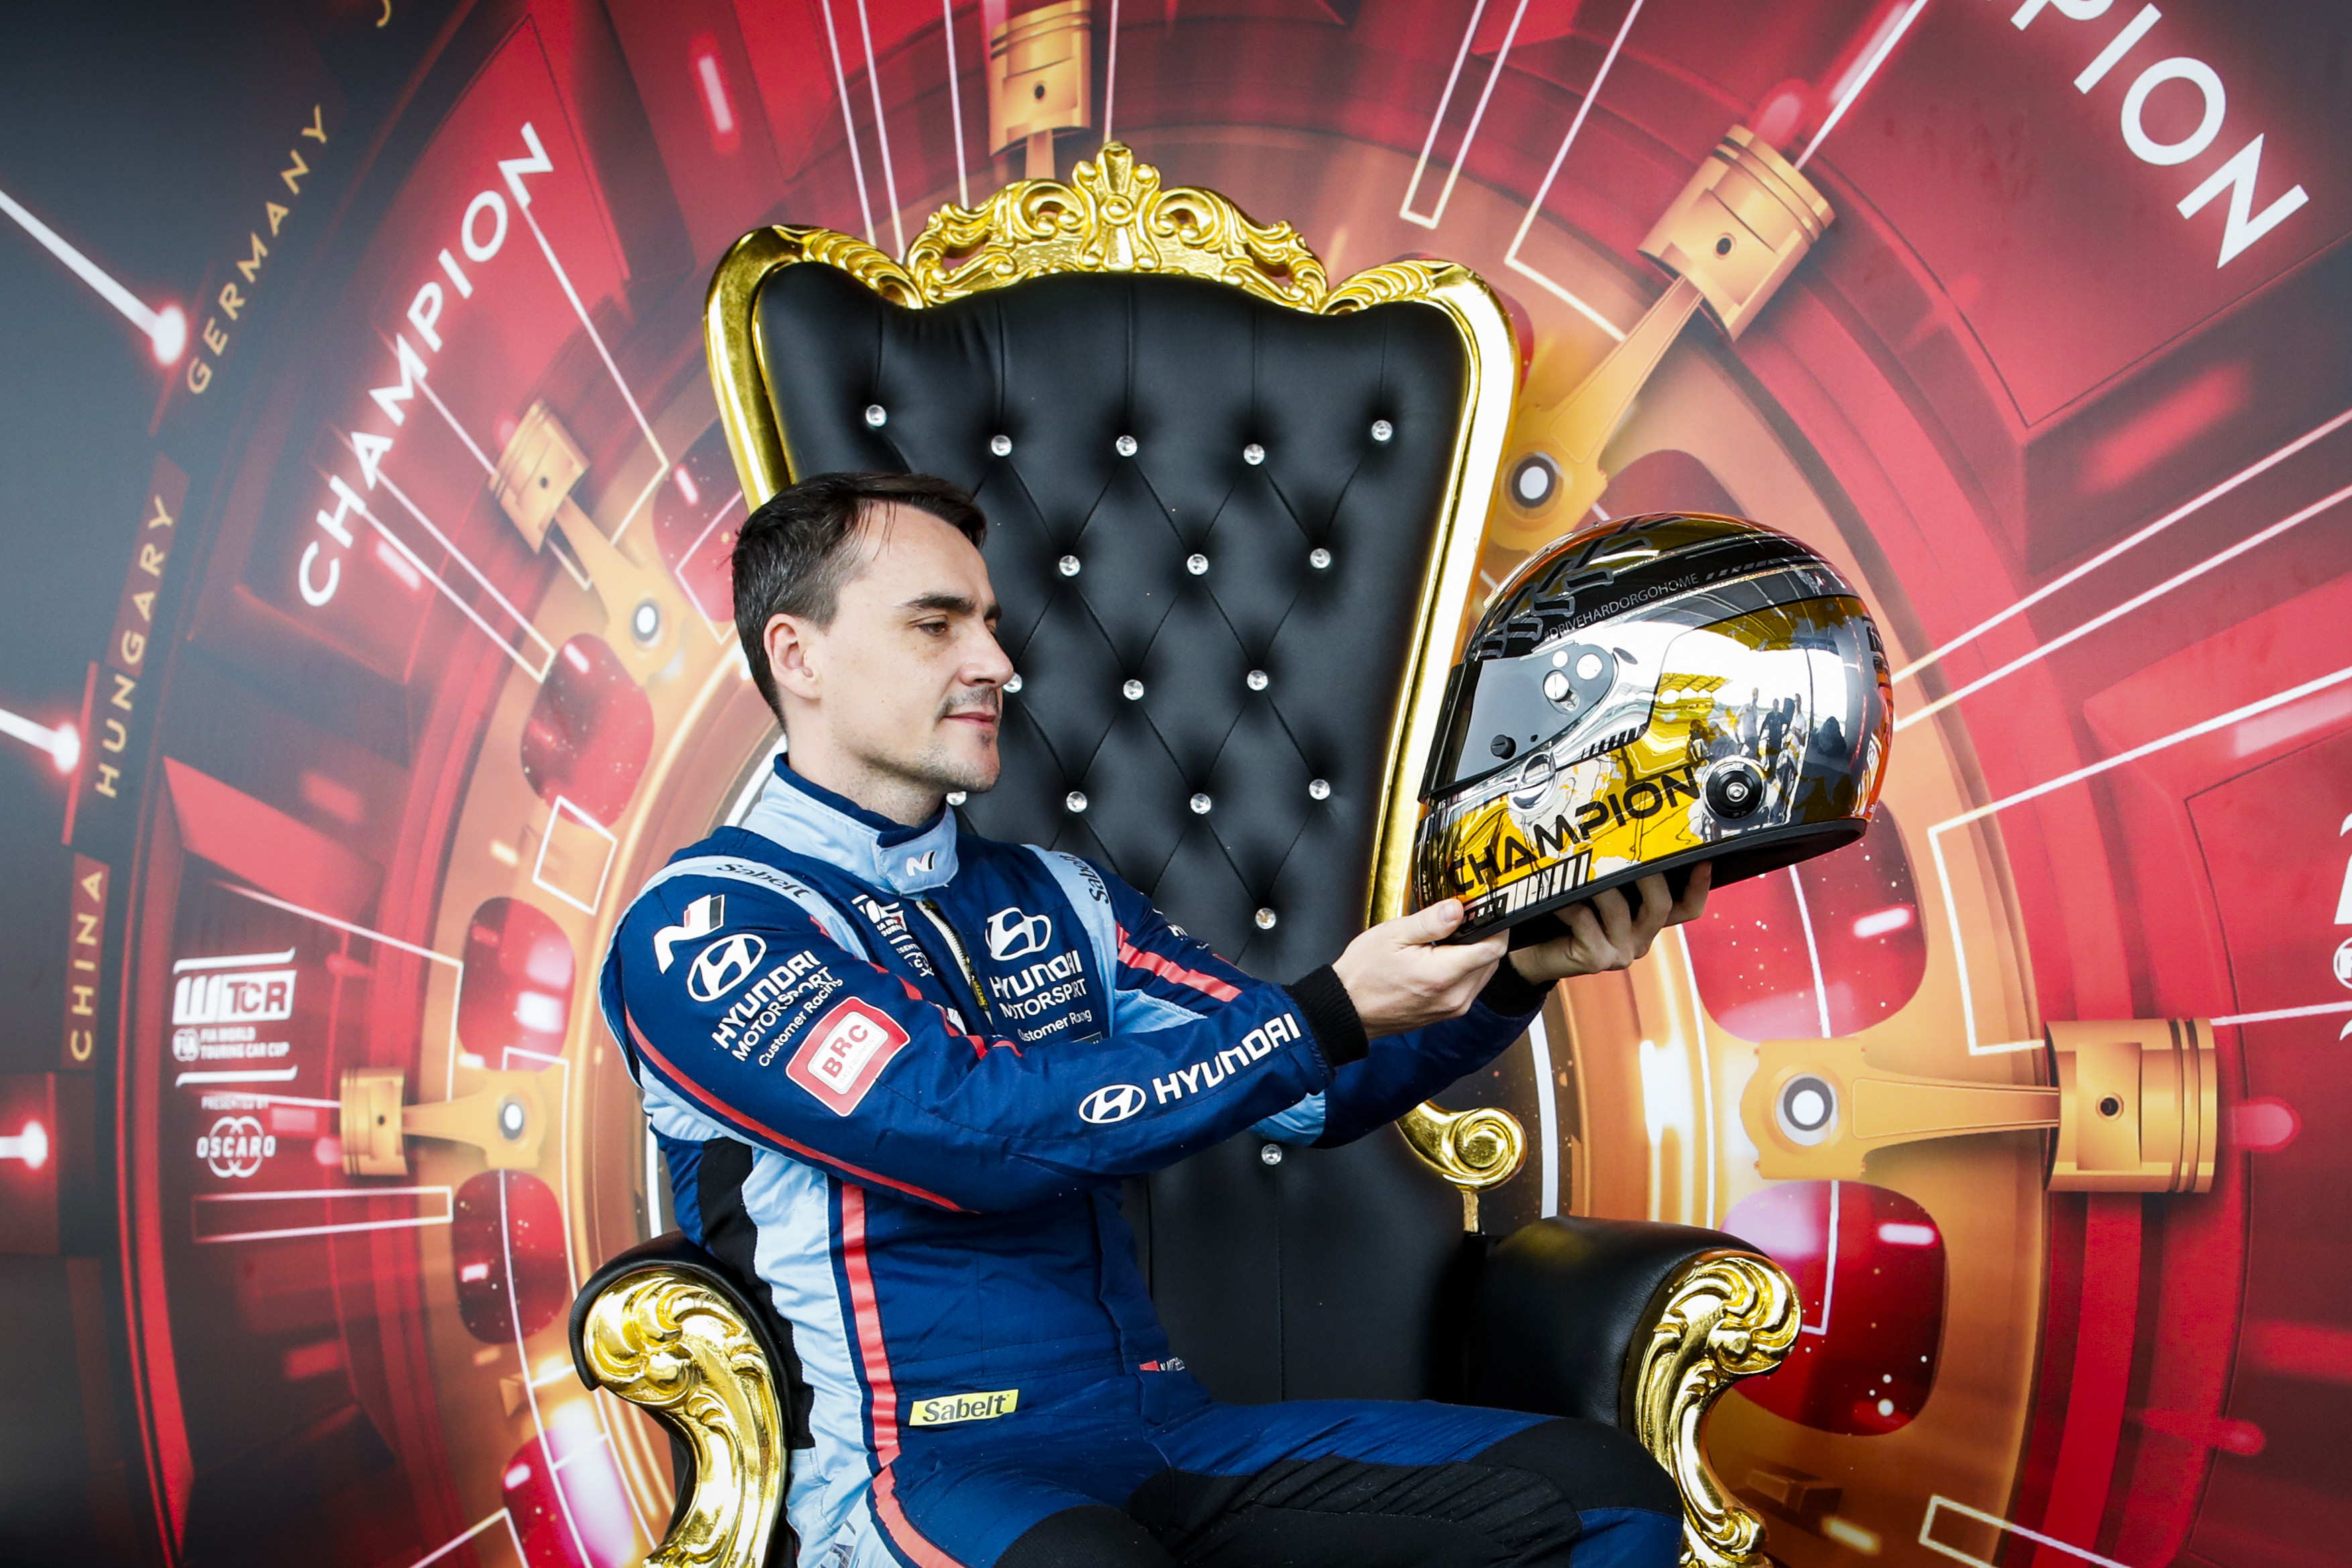 When Michelisz became King of WTCR two months on